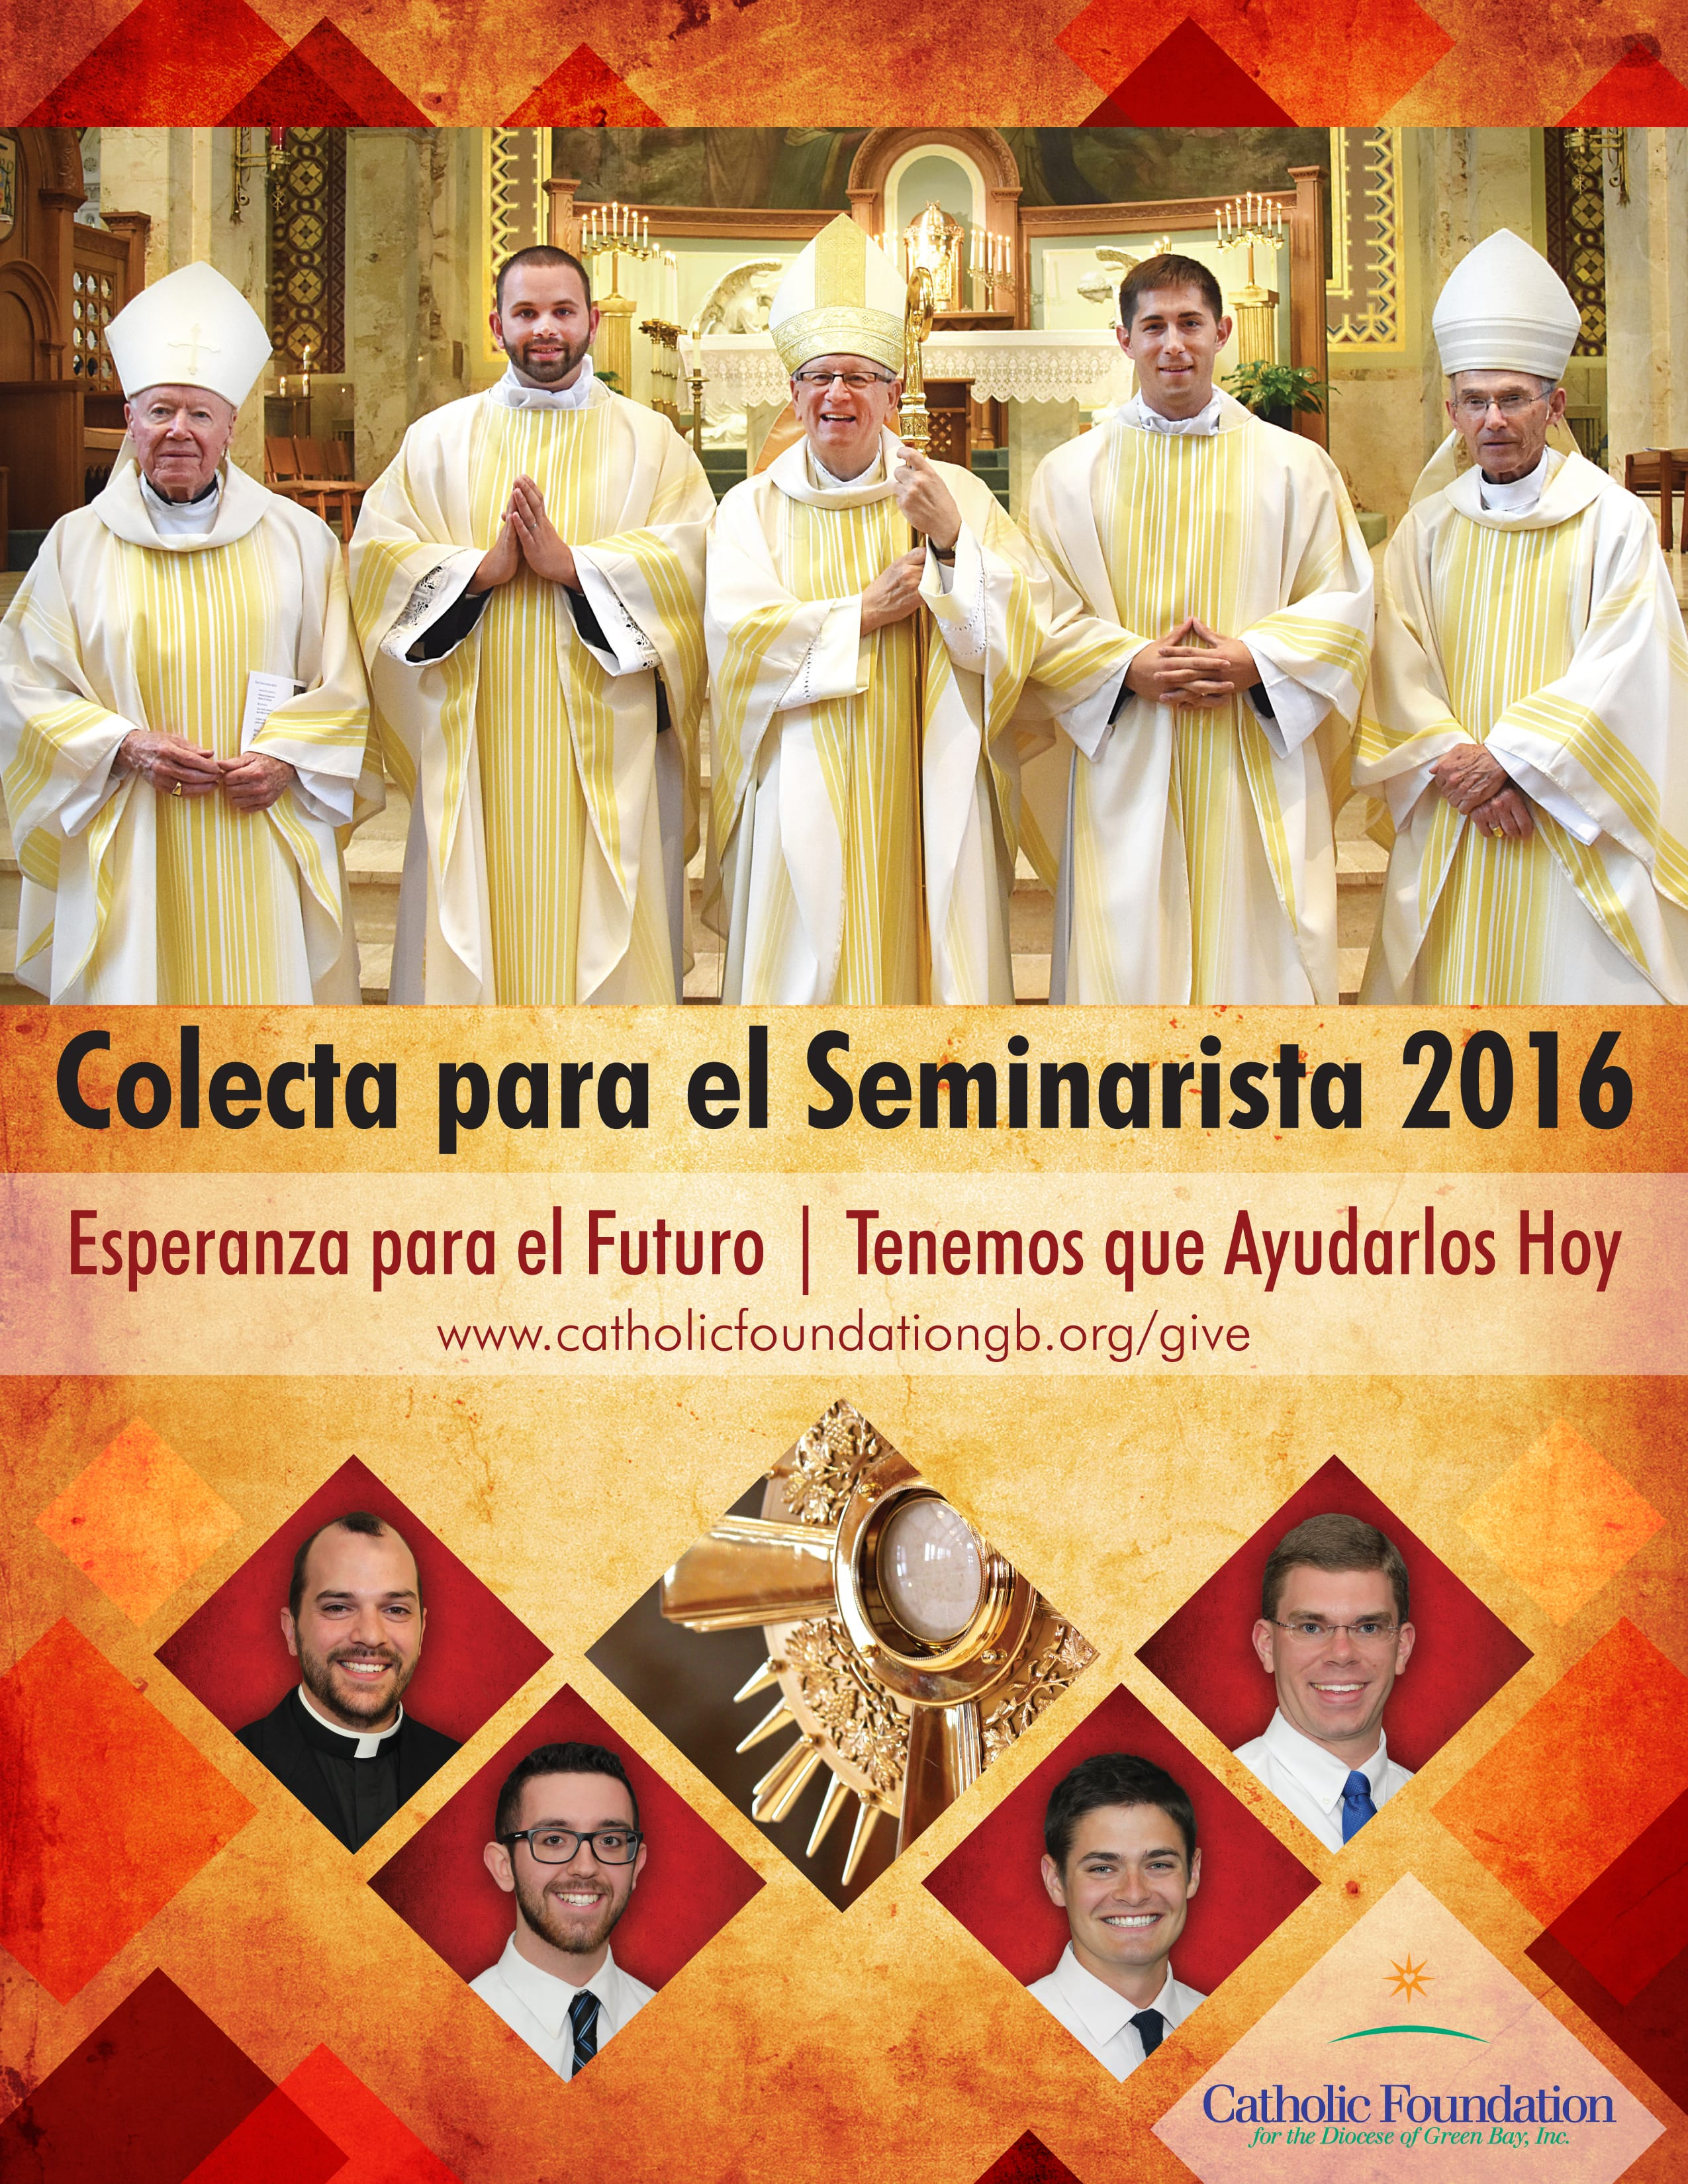 2016 Seminarian Collection Poster Spanish